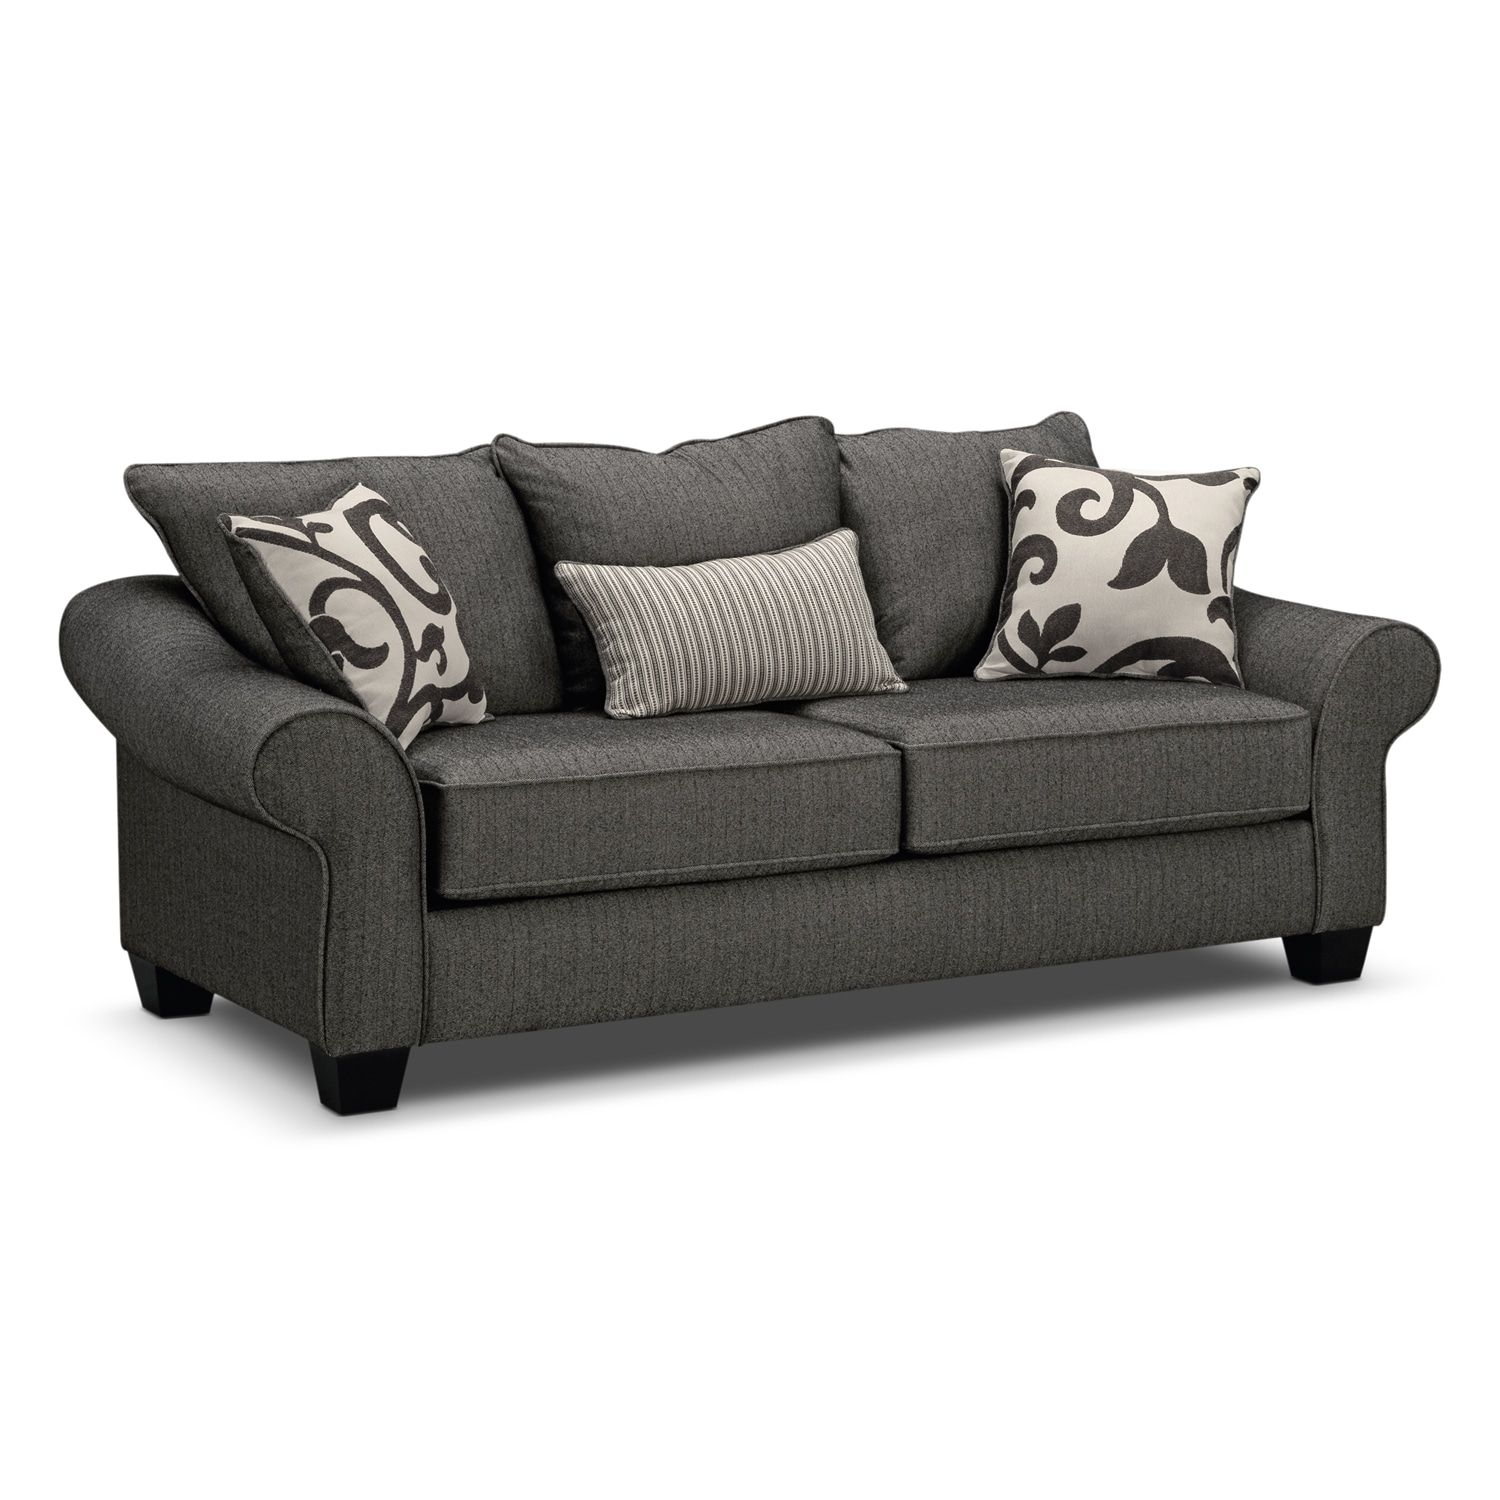 Living Room Furniture Sleeper Sofa Best Collections Of Sofas And Couches Sofacouchs Com Sofa Upholstery Furniture Sofa